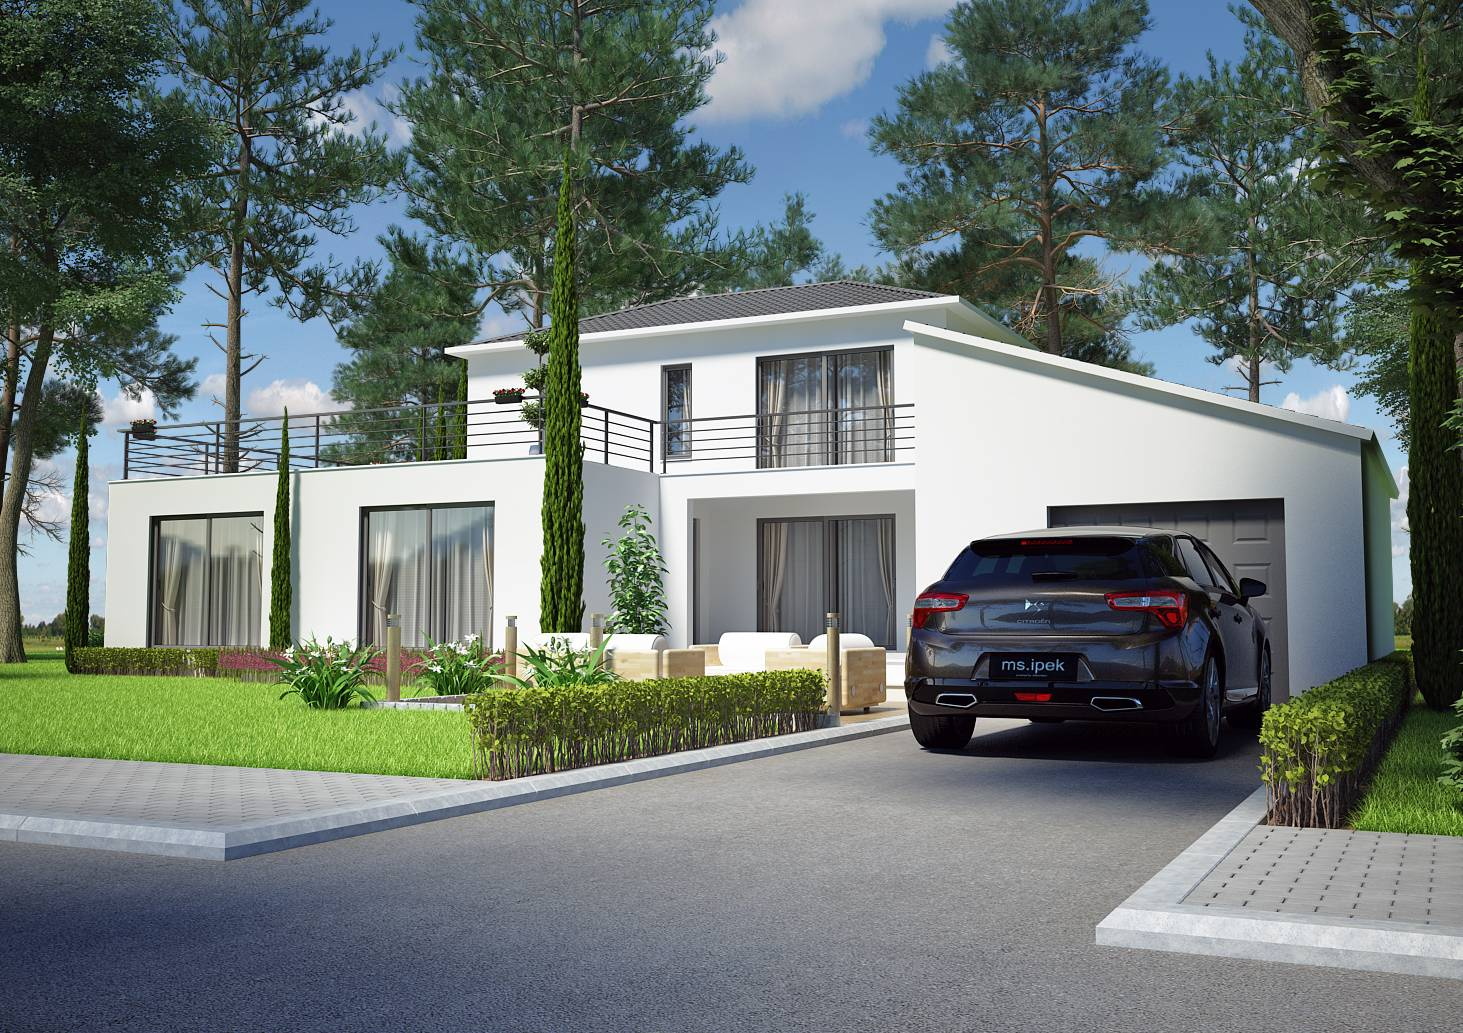 Villa contemporaine 125m2 etage mod le magnolia salon for Modele de villa